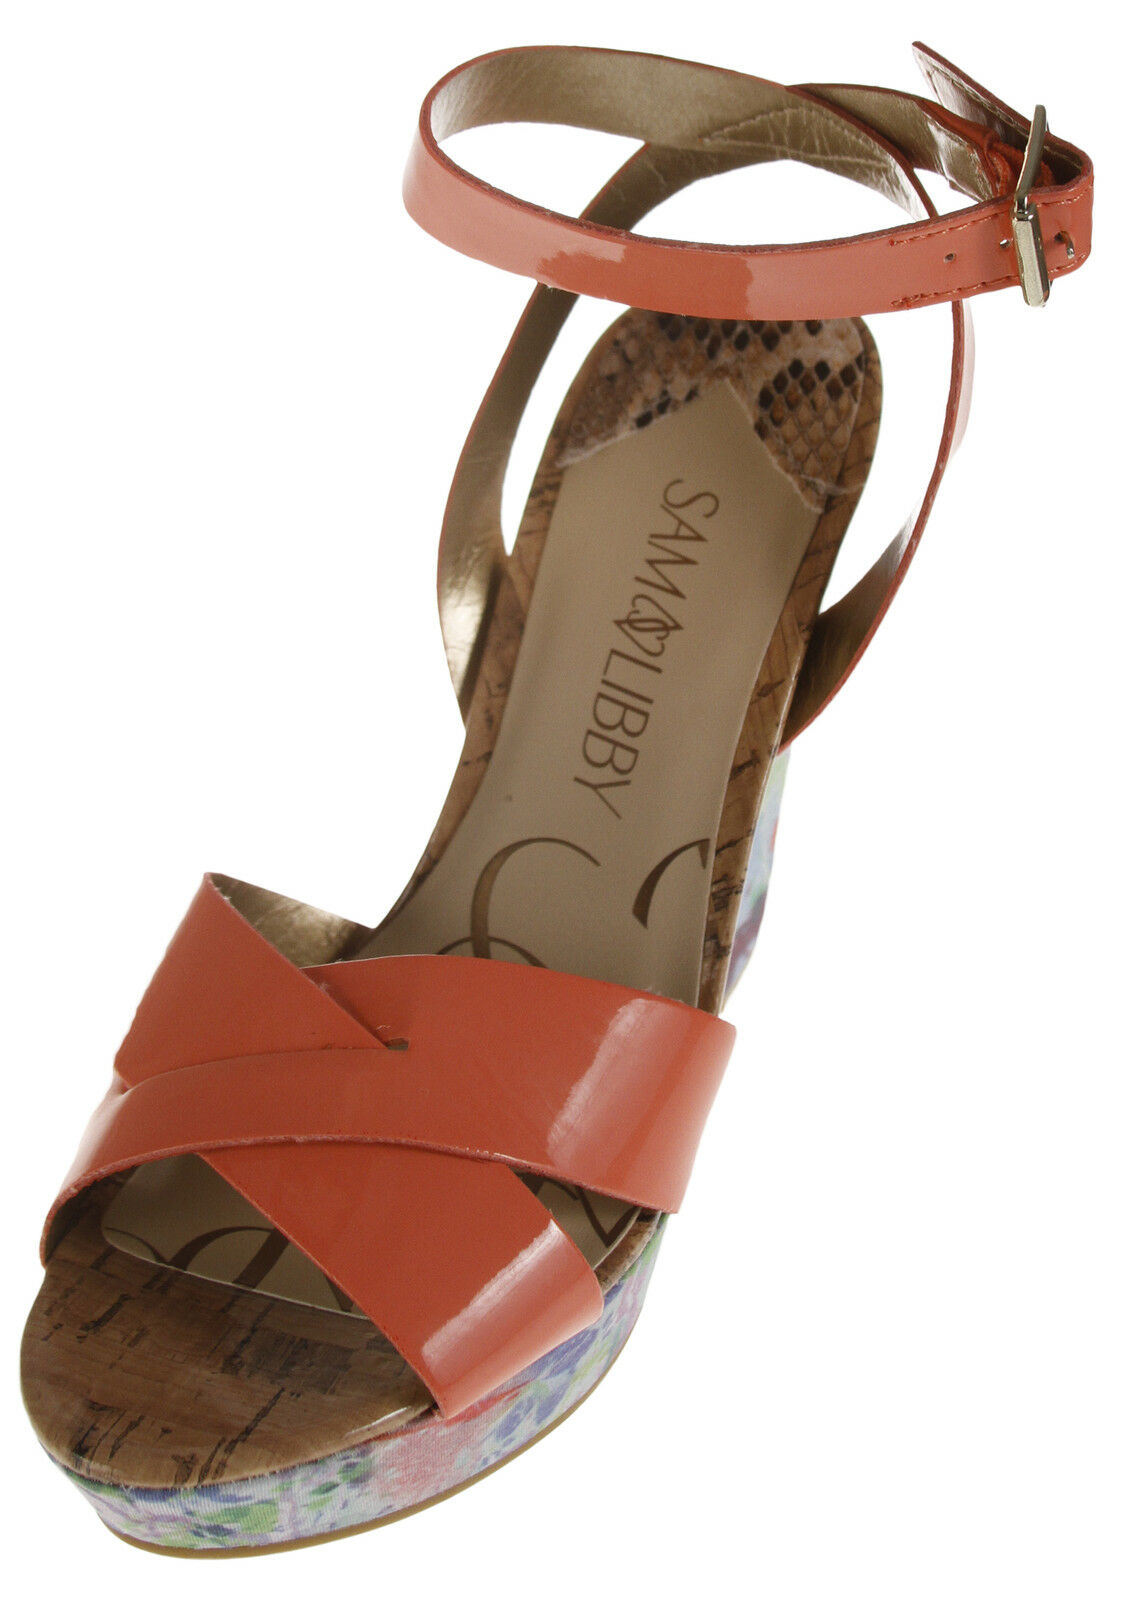 Sam & Libby Ankle Women's Kelly Wedge Heel Ankle Libby Strap Sandals - Coral Floral ba1279